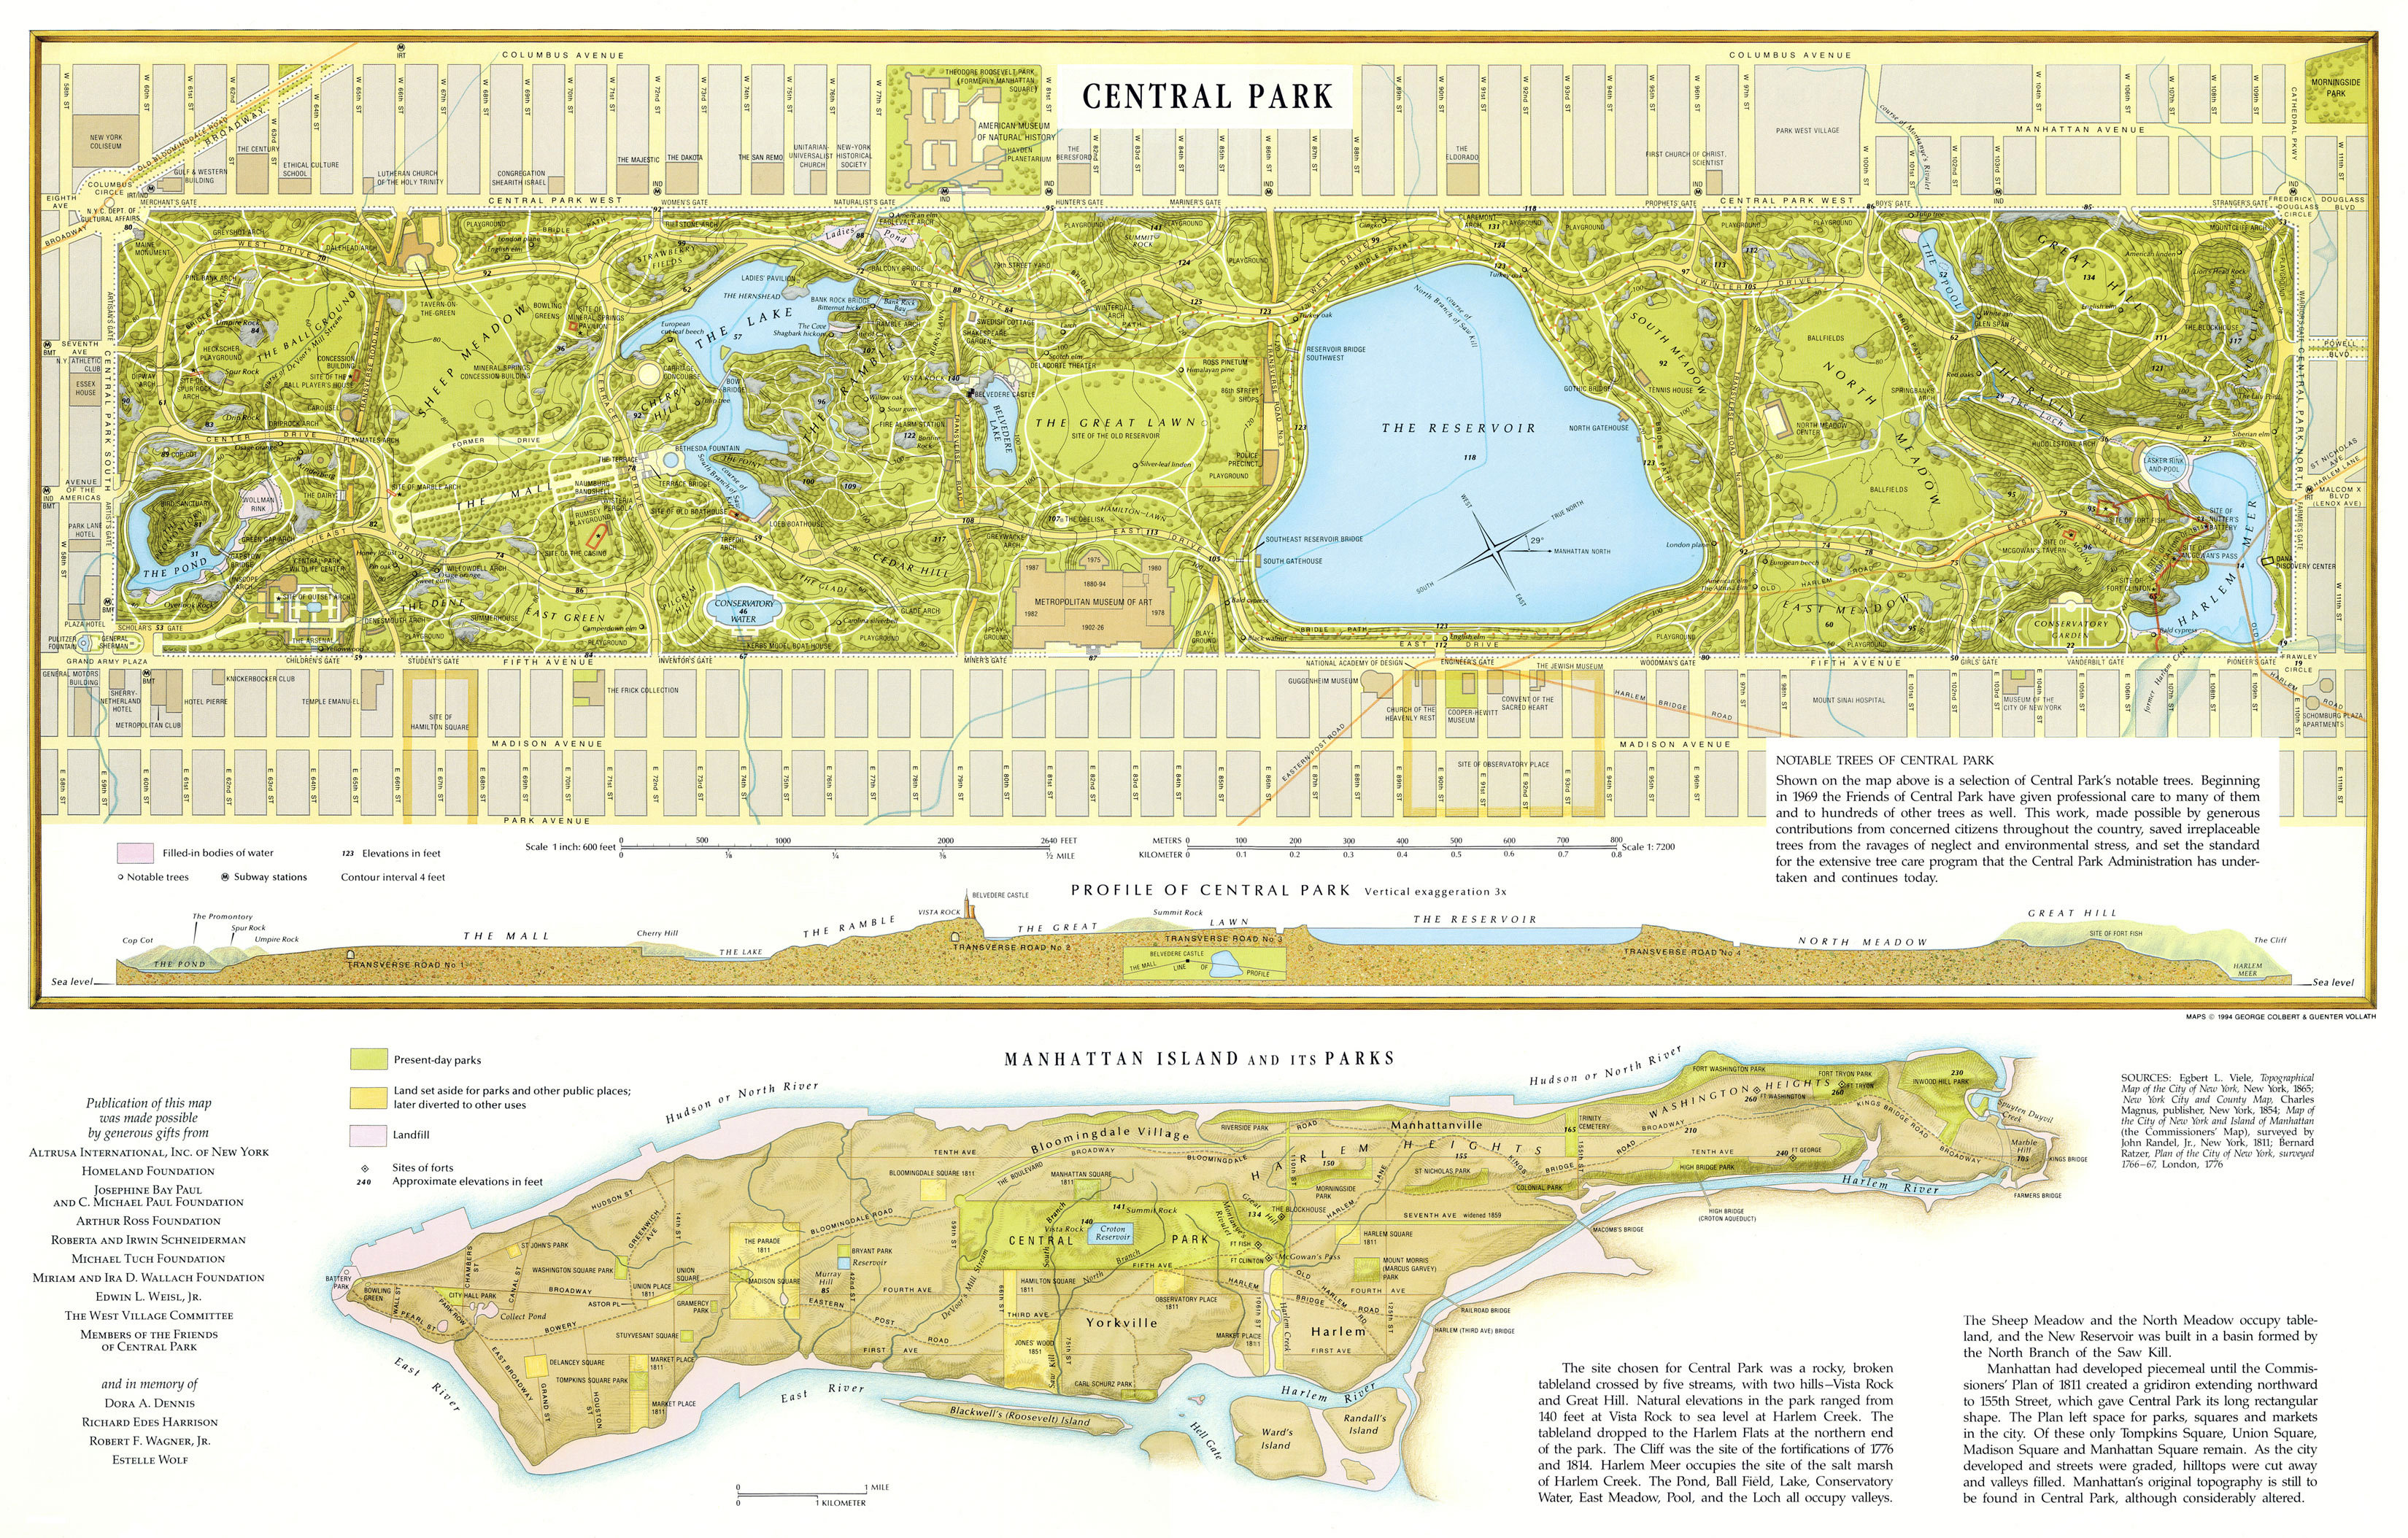 Large detailed map of Central Park, Manhattan, NYC | New ... on grand central station new york map, central park walking map, streets of new york city map, conservatory water central park map, central park sculptures, central park directions, central park horse show, central park dimensions, central park ramble map, central park new balance, central park bridge, central park attractions, fort tryon park ny map, central park running map, central park tour map, central park visitors map, cny central park map, statue of liberty new york map, beth israel west campus map, new york city central map,